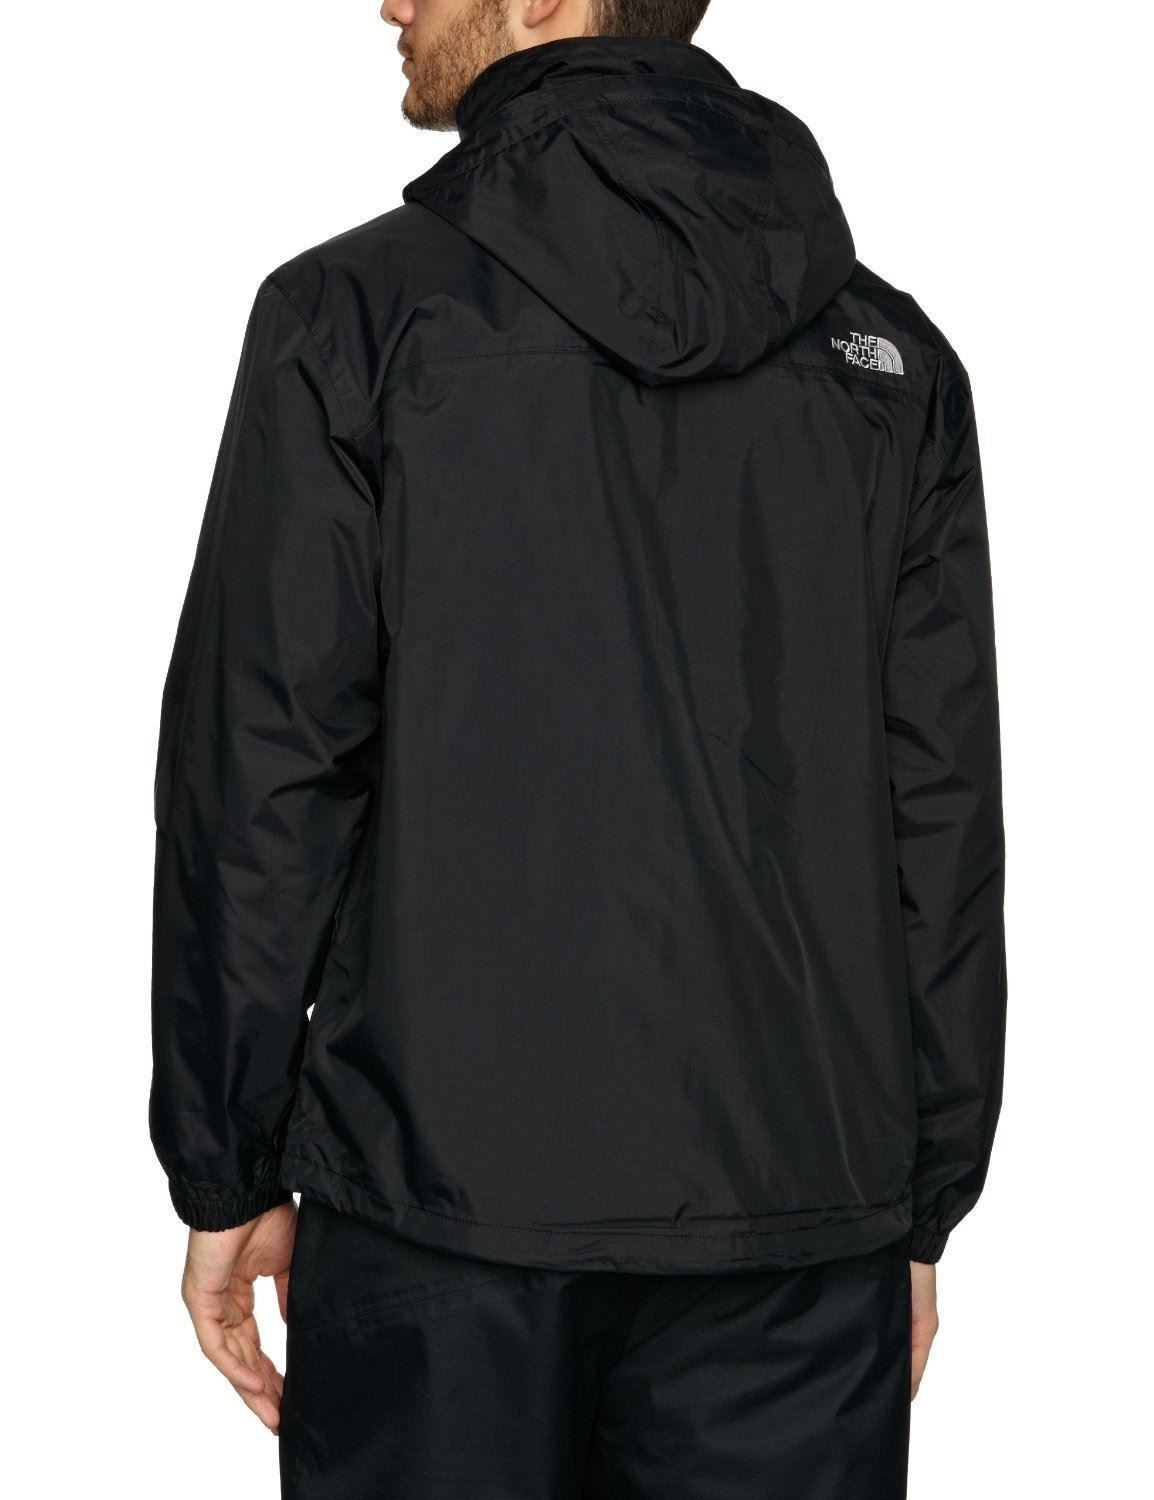 e035c1916f19 The North Face Men s Resolve Jacket Waterproof Breathable